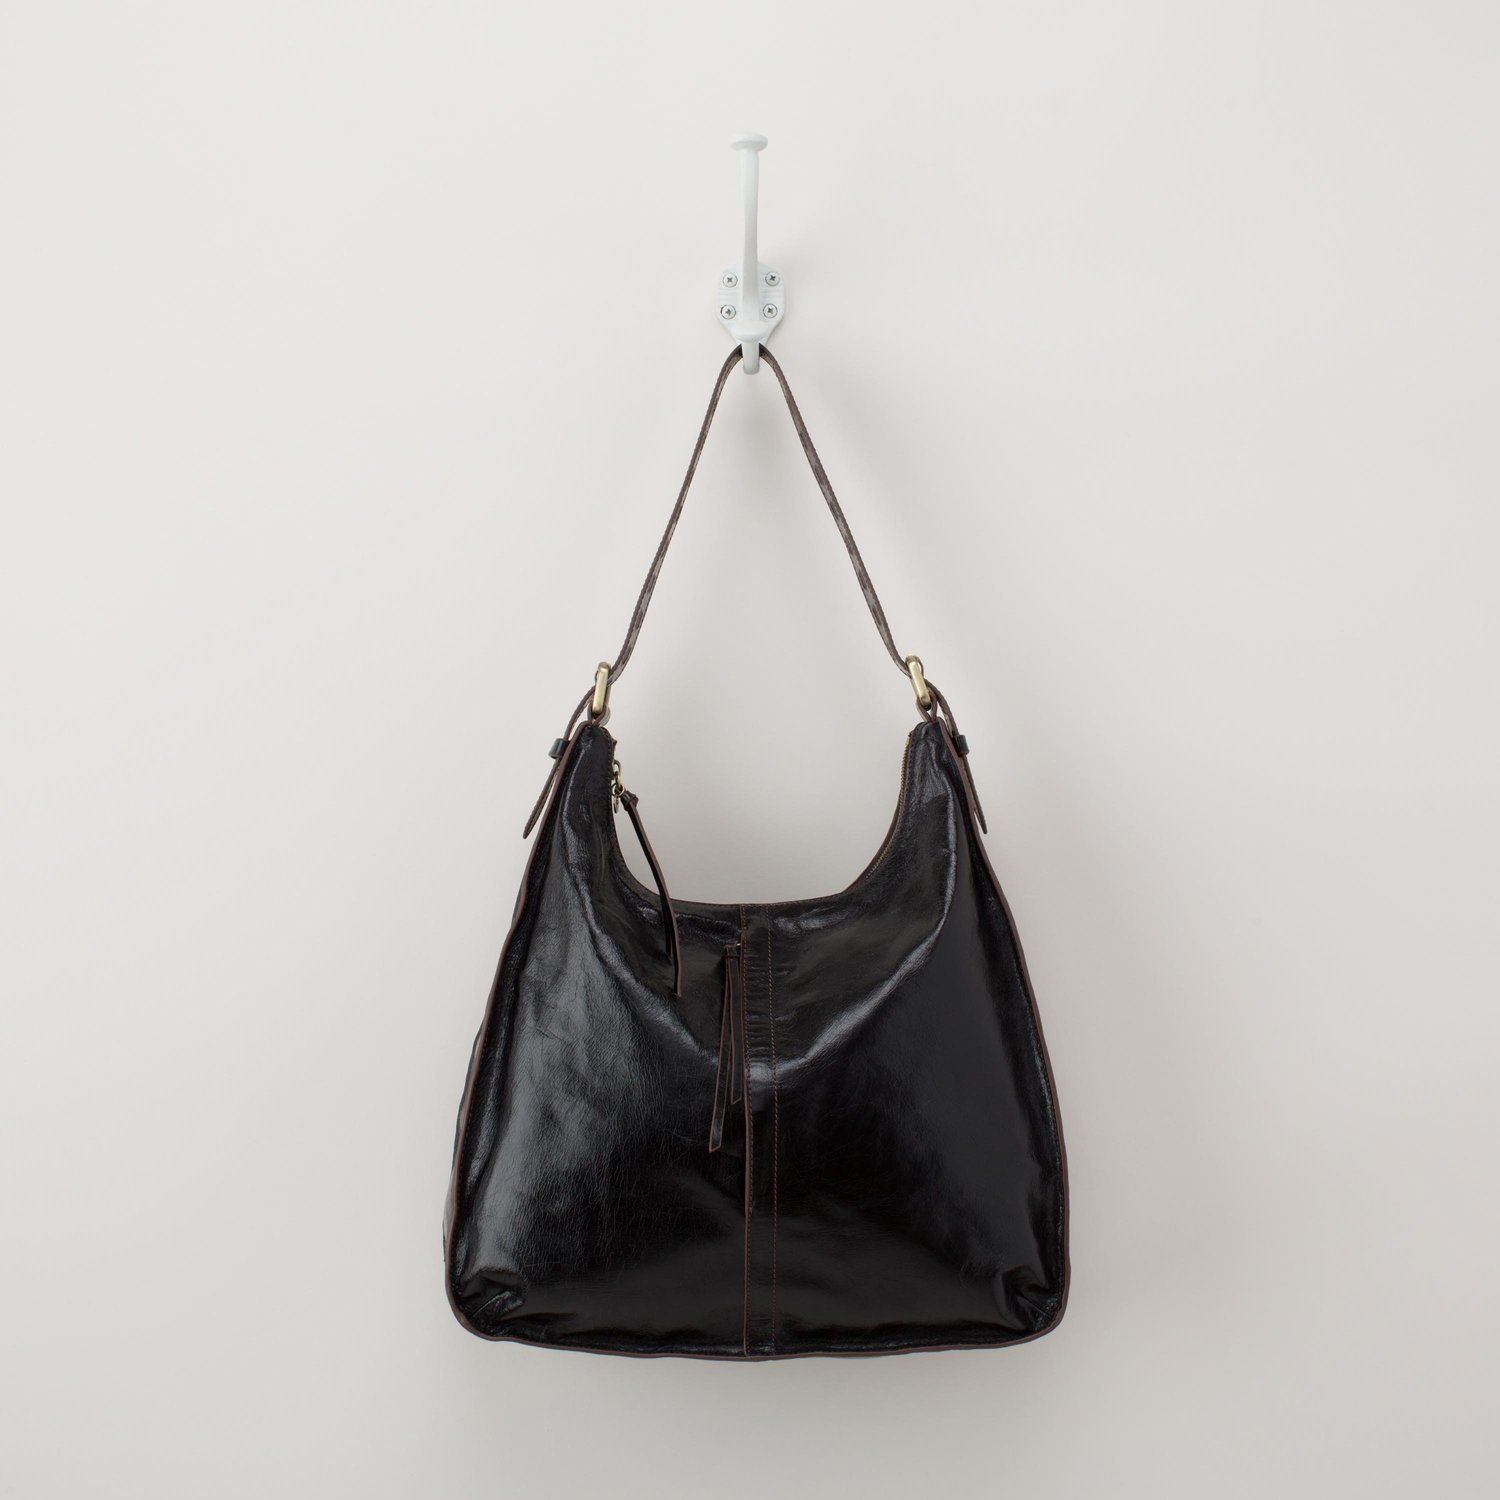 Marley Hobo | Handbag accessories